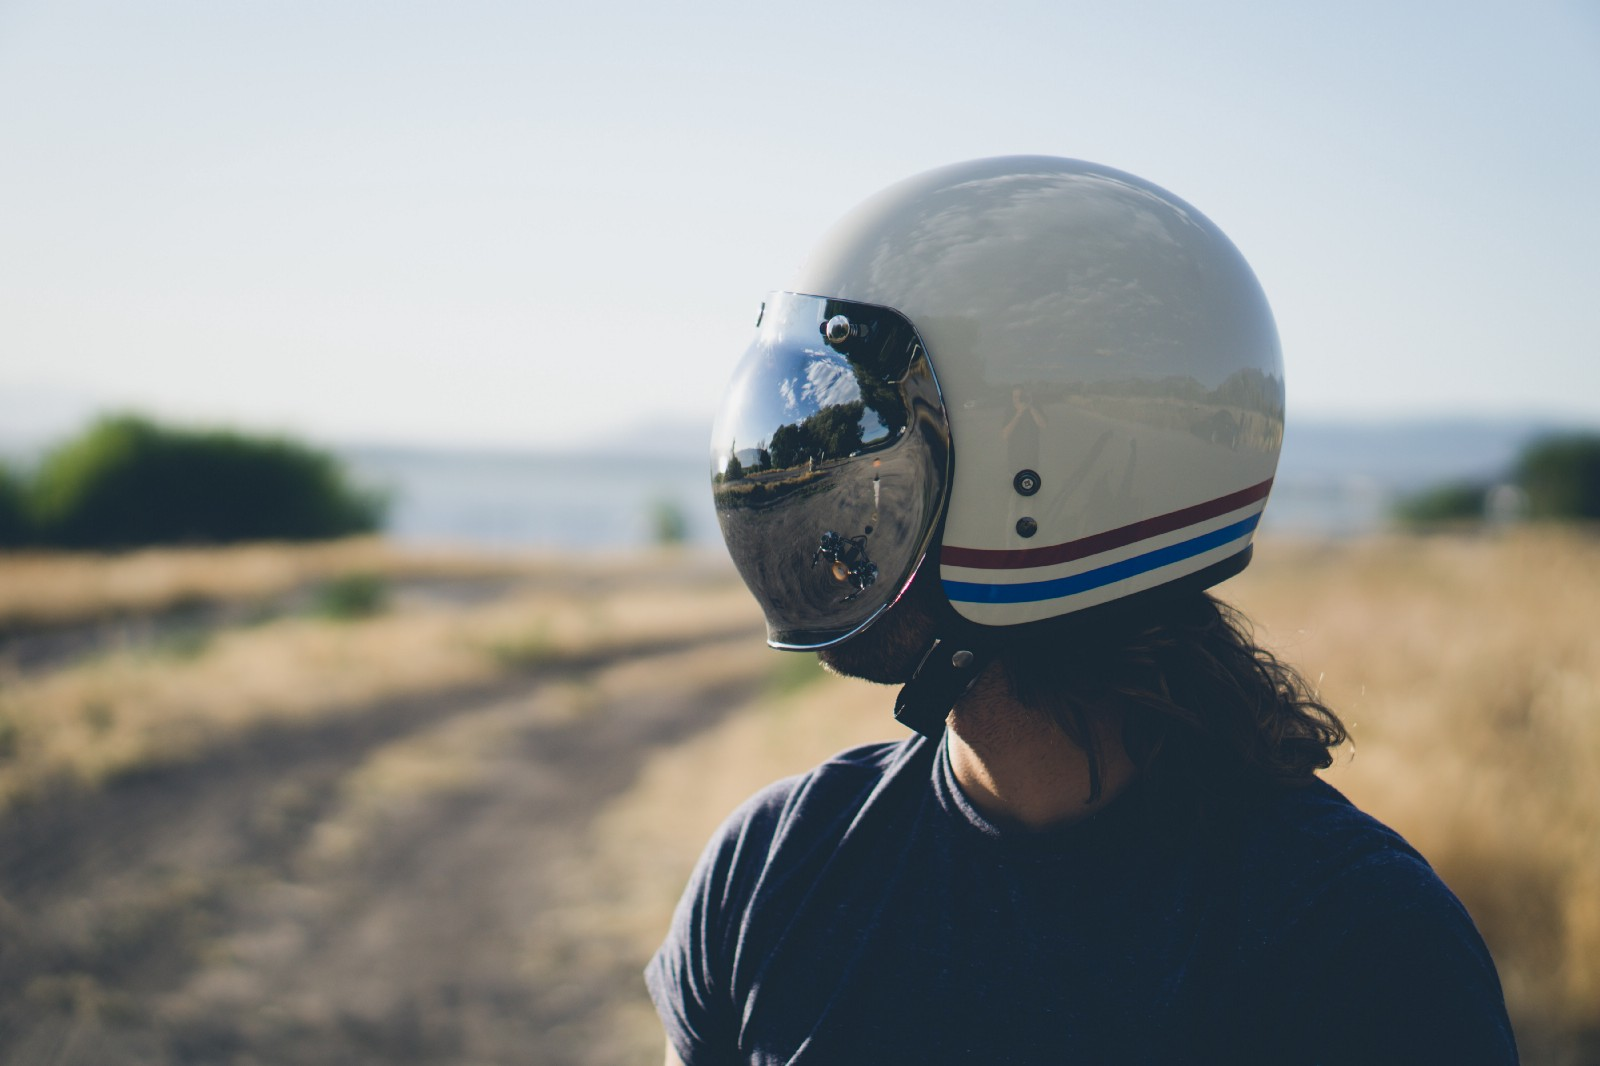 Unfortunately Wearing A Helmet For Long Hours Comes With Problems Like Hair Loss